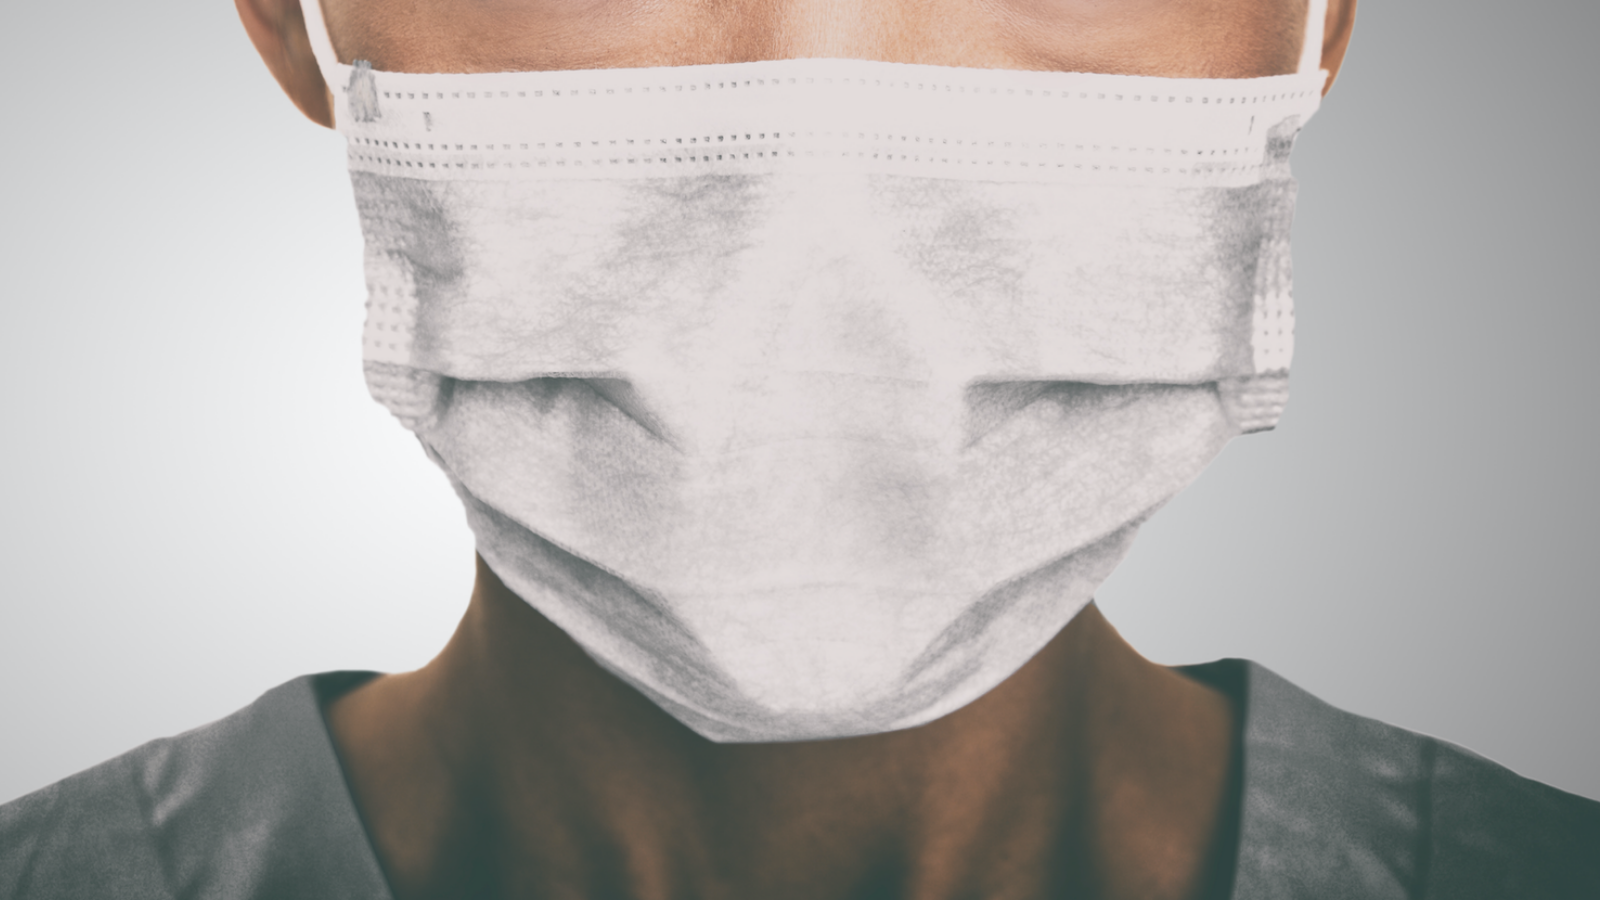 New study reveals exactly how useful a mask is at protecting you from COVID-19